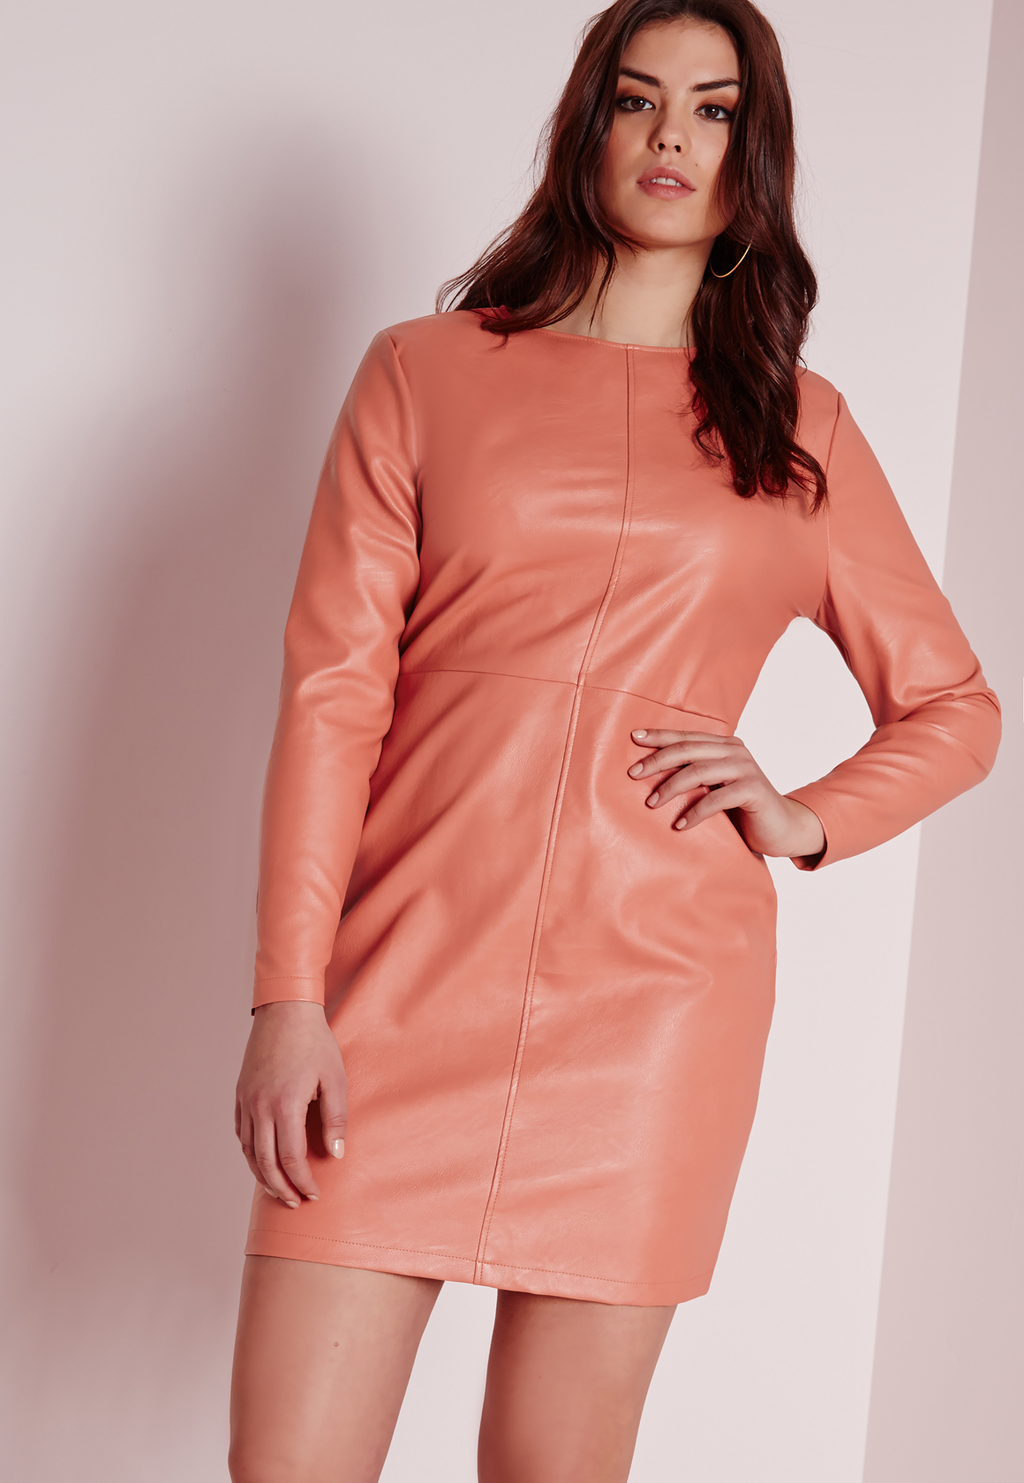 Plus Size Faux Leather Dress Pink, Salmon - style: shift; length: mini; pattern: plain; predominant colour: coral; occasions: evening; fit: body skimming; fibres: polyester/polyamide - 100%; neckline: crew; sleeve length: long sleeve; sleeve style: standard; pattern type: fabric; texture group: other - light to midweight; season: s/s 2016; wardrobe: event